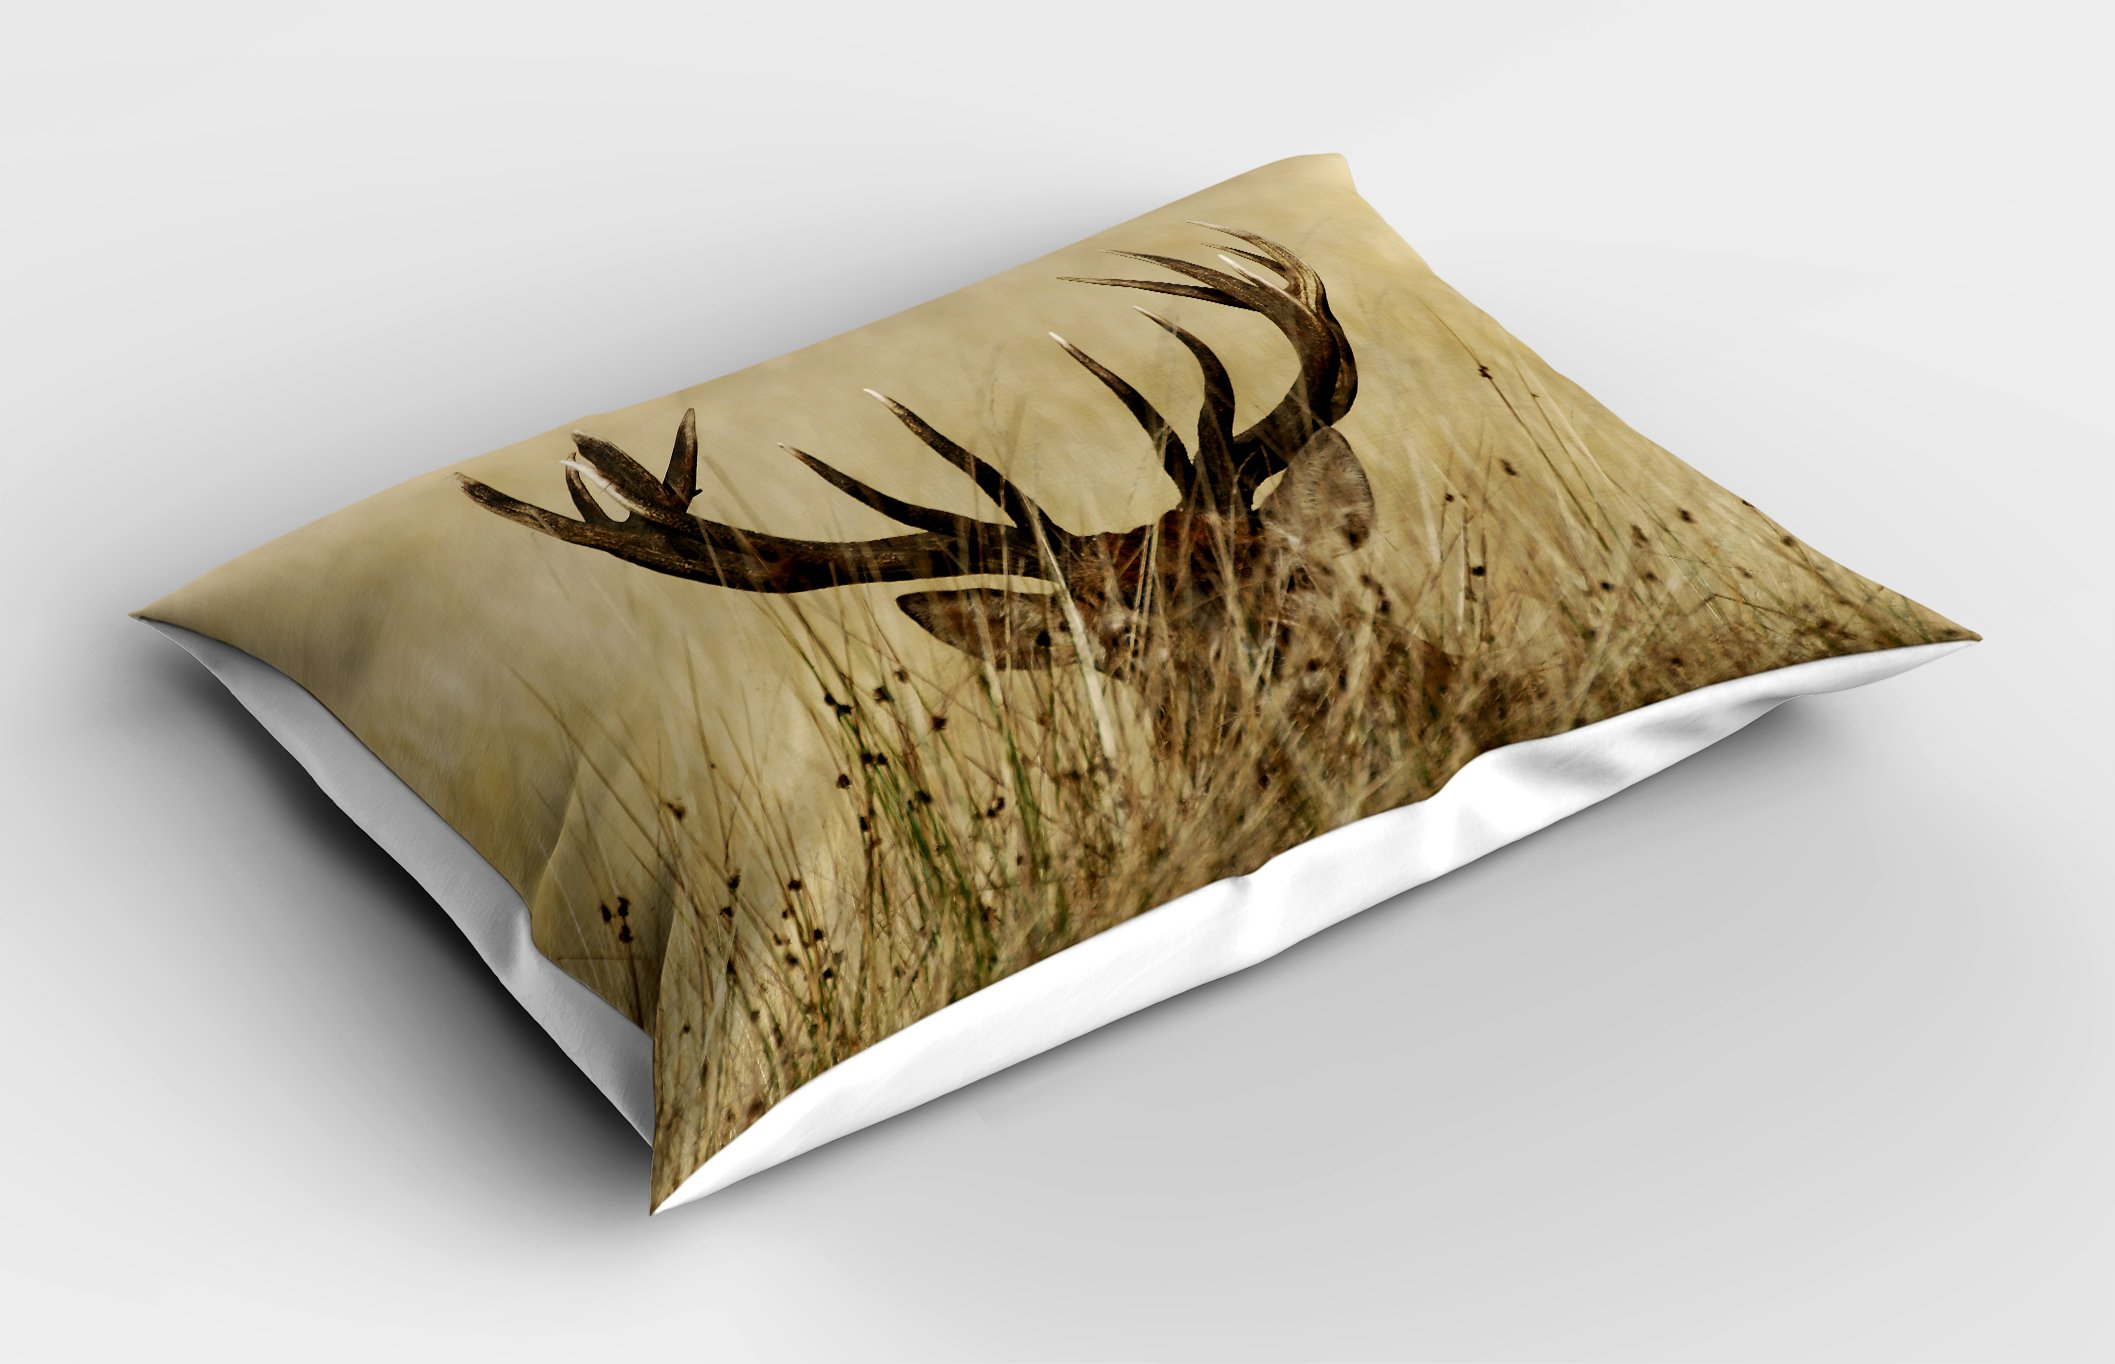 Lunarable Antler Pillow Sham, Whitetail Deer Fawn in Wilderness Stag in Countryside Rural Hunting Theme, Decorative Standard King Size Printed Pillowcase, 36 X 20 inches, Brown Sand Brown by Lunarable (Image #2)